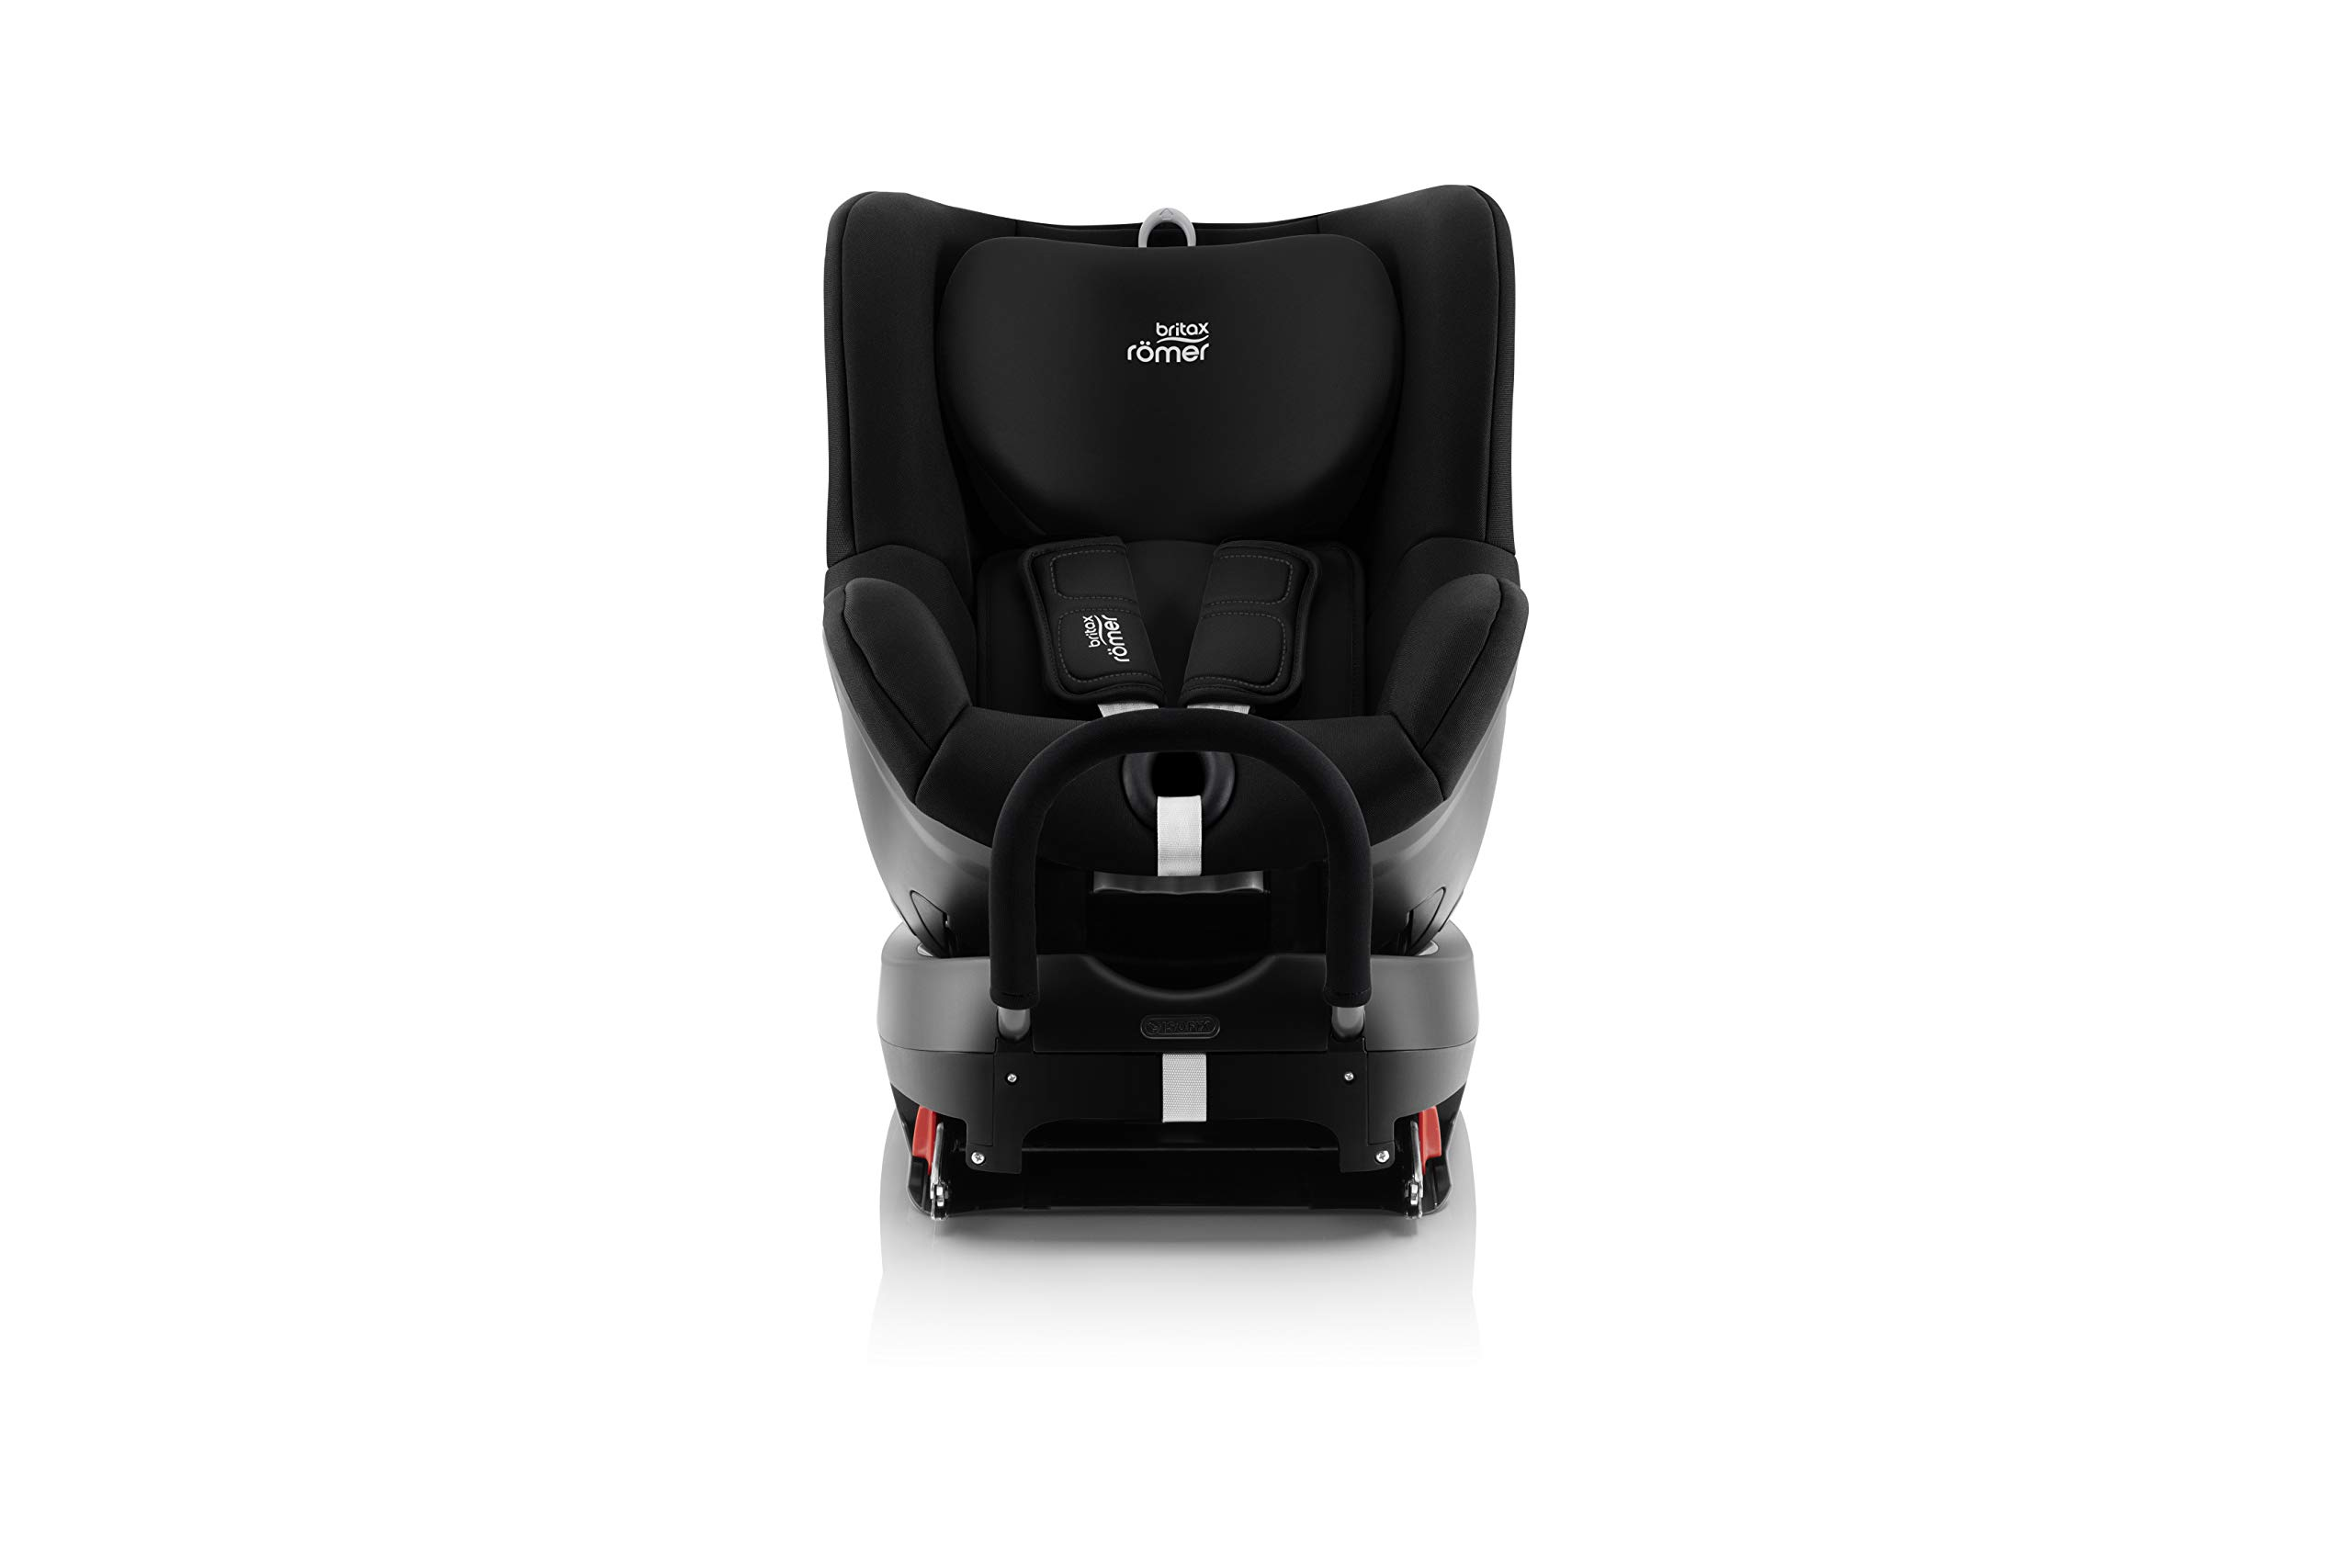 Britax Römer DUALFIX² R Group 0+1 (Birth-18 kg) Car Seat, Cosmos Black Britax Römer Intuitive 360° rotation for rearward and forward facing usage Easy entry with 90 degree rotation to the open door for easy placement of the child Extended rearward facing travel with more leg space thanks to shorter rebound bar 2